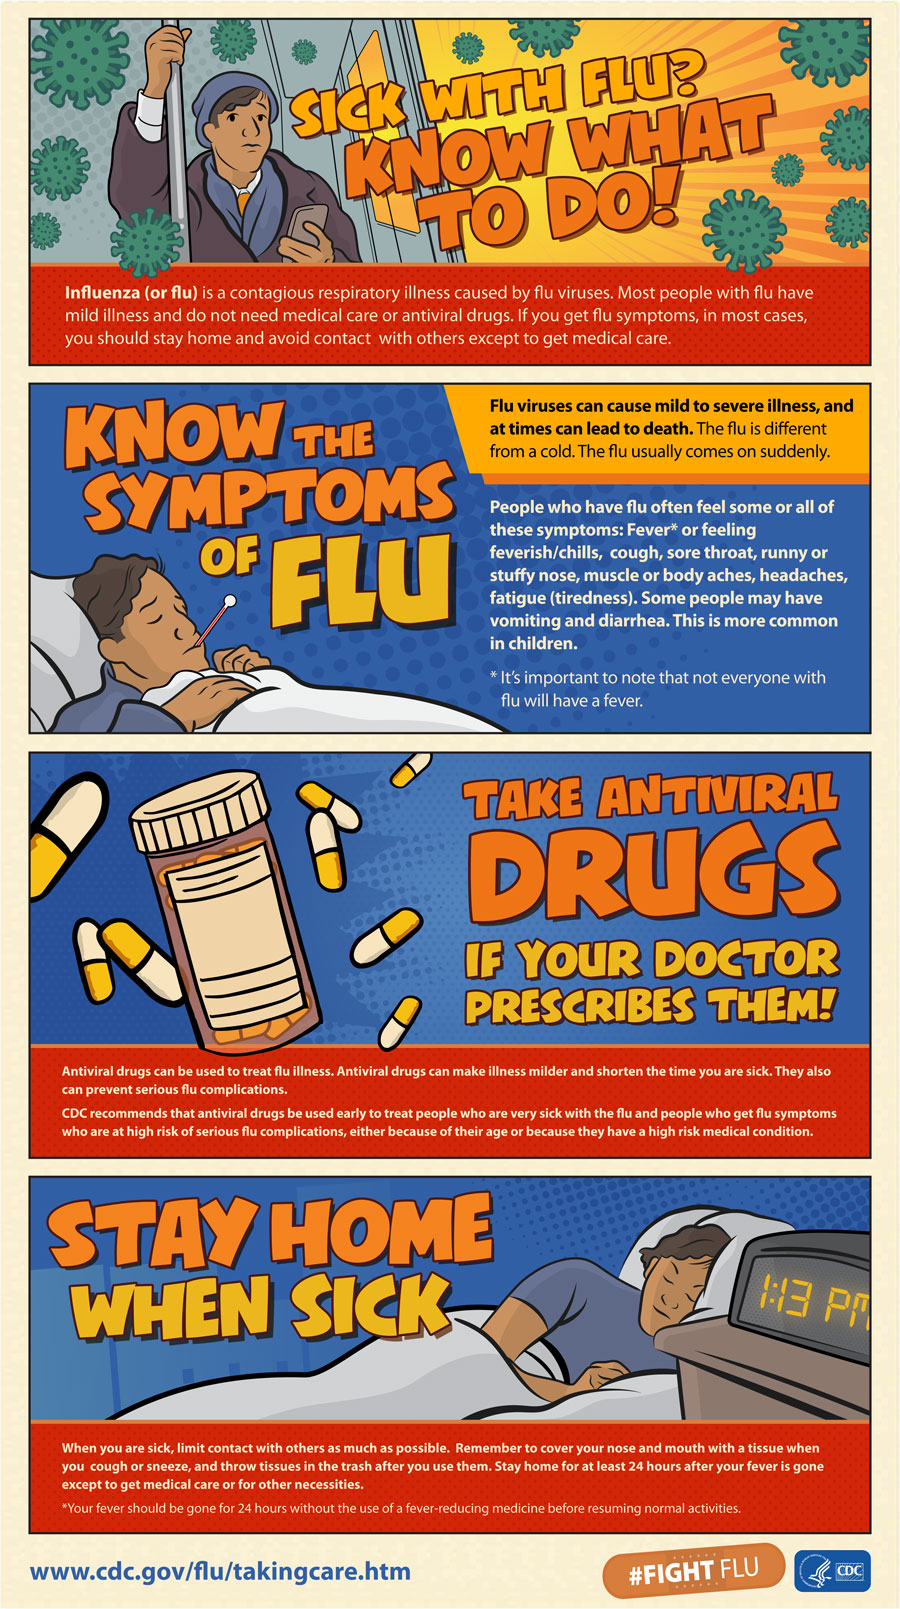 Sick With Flu? Know What to Do! | CDC